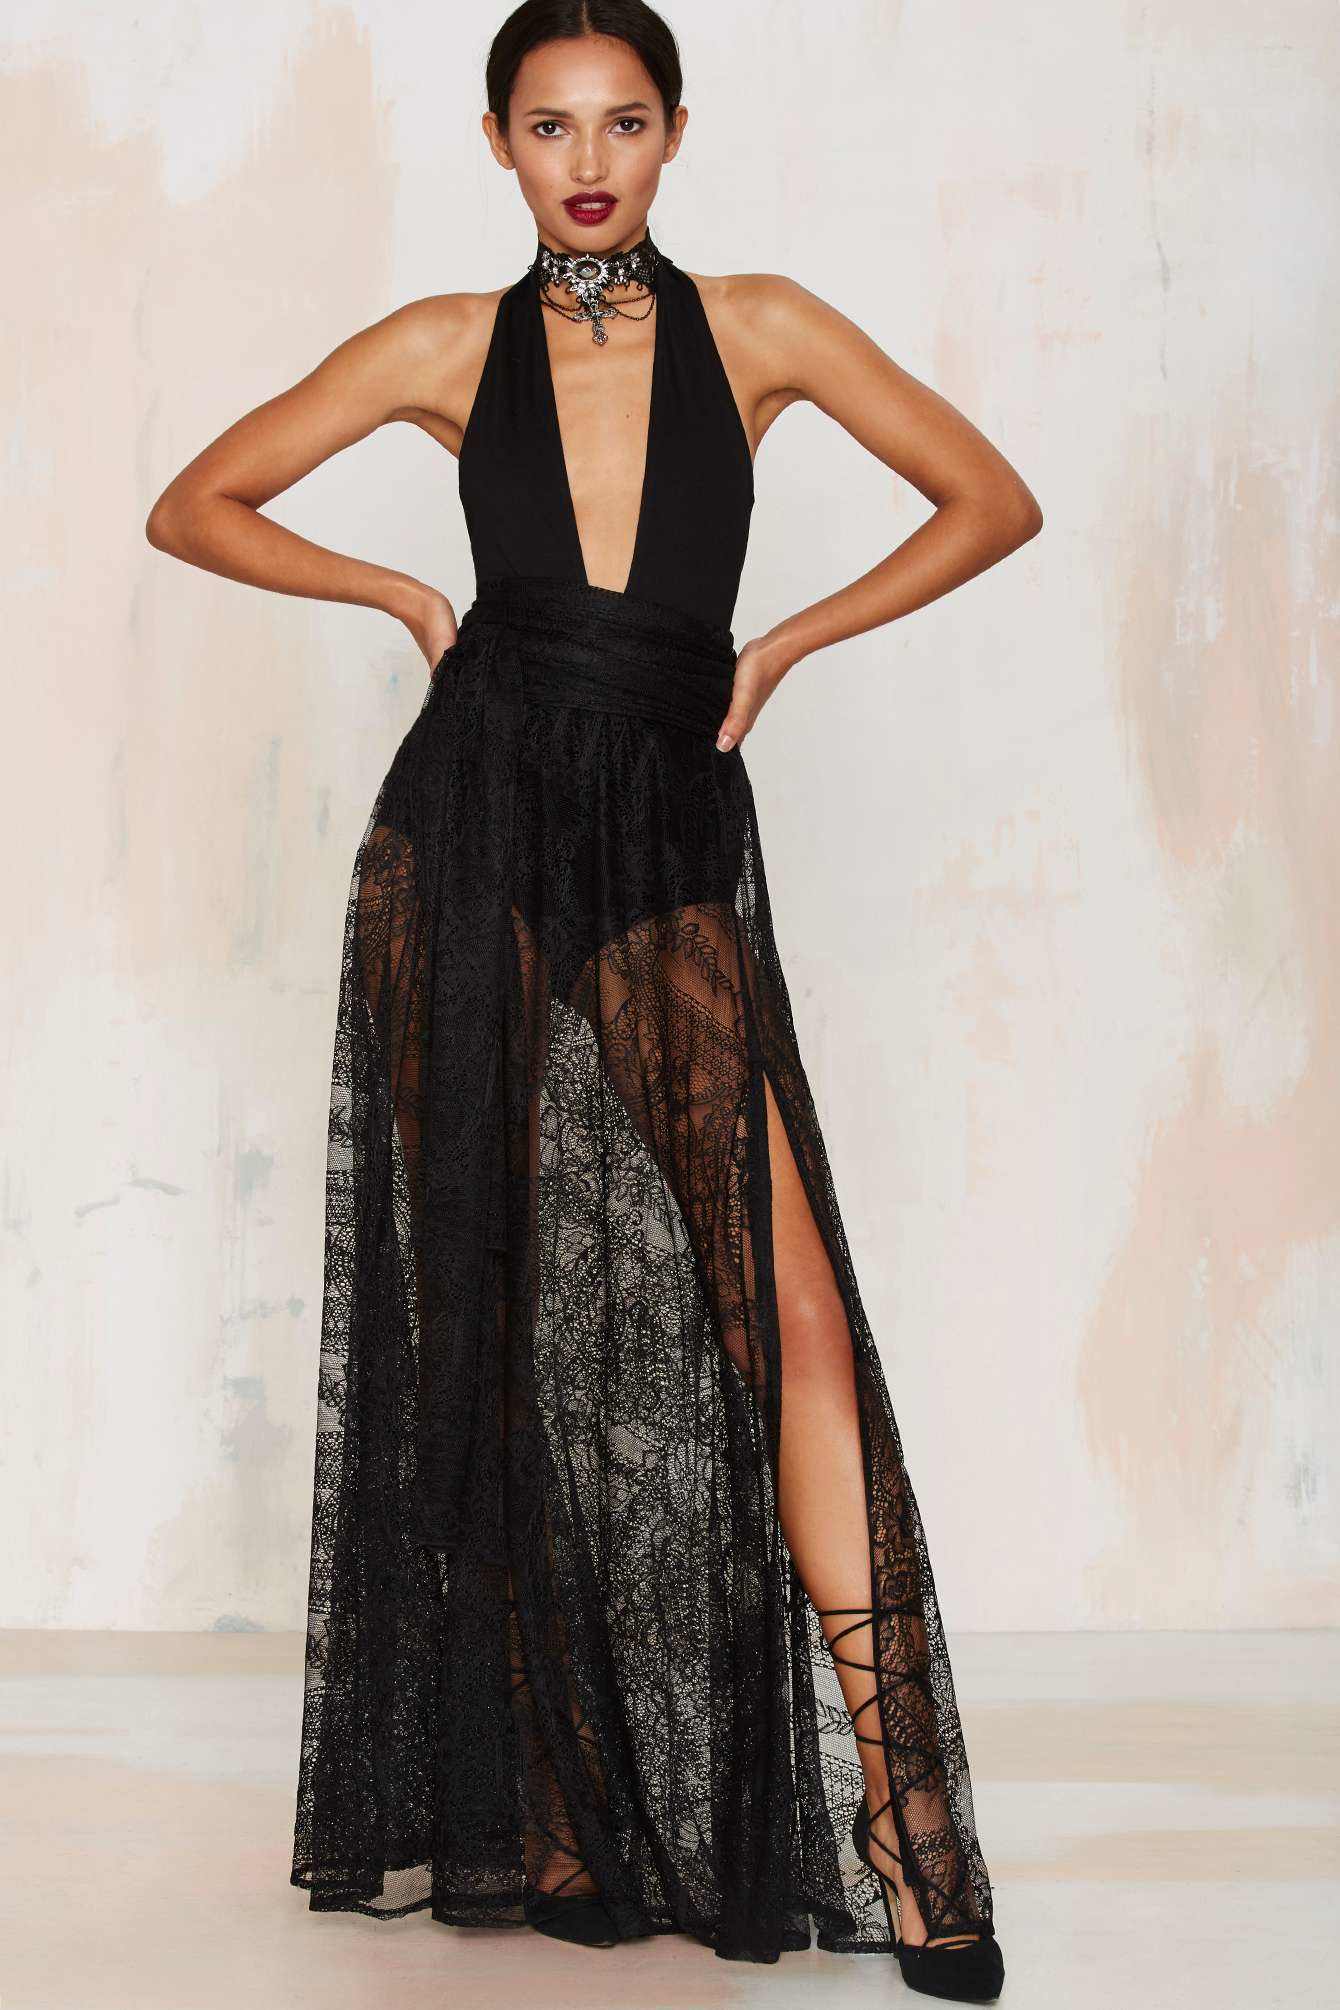 Nasty gal Just In Lace Maxi Skirt in Black | Lyst